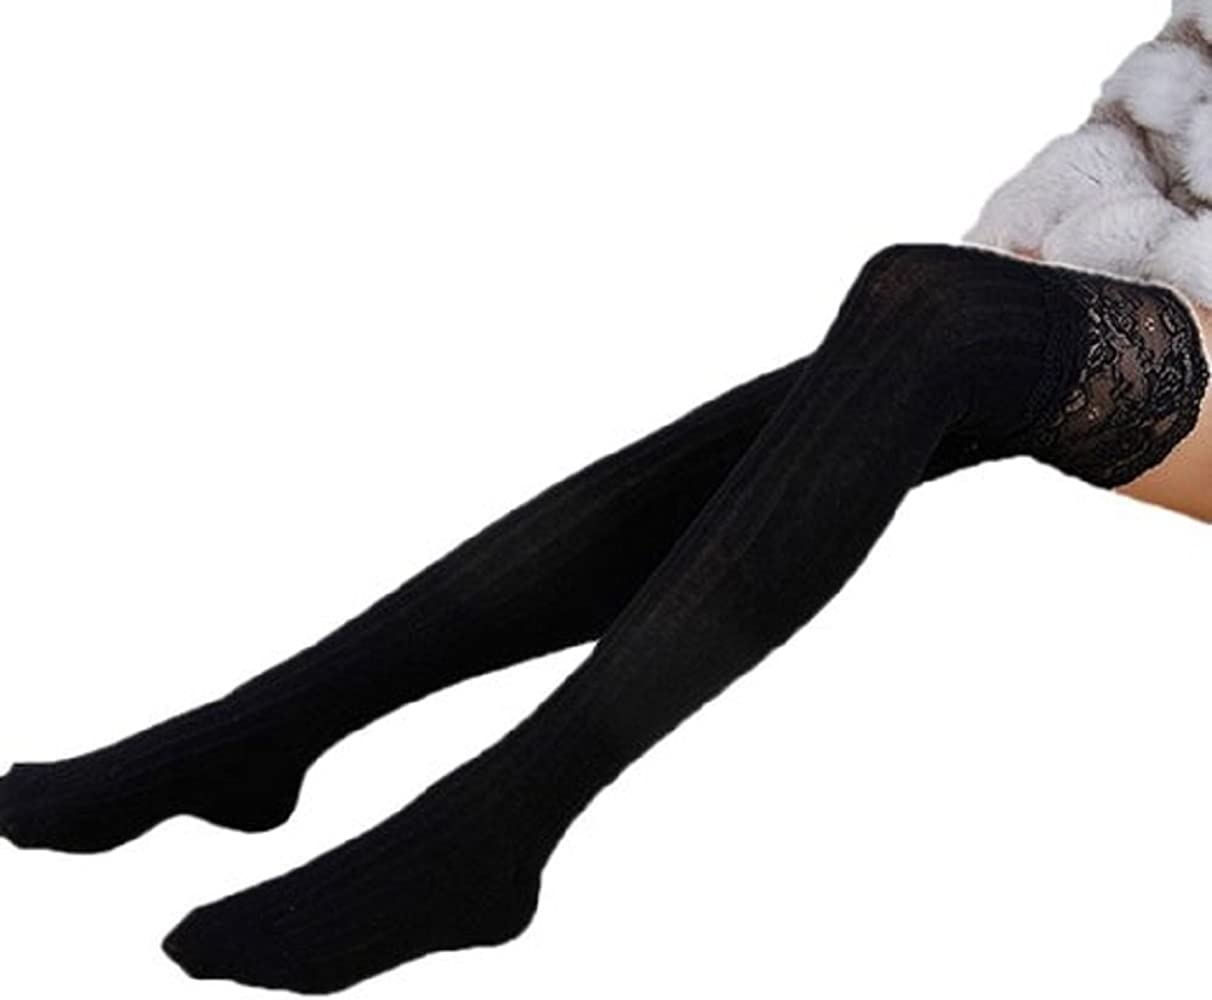 Thigh Stockings High Socks Pantyhose Tights Women Knitting Lace Cotton Over Knee